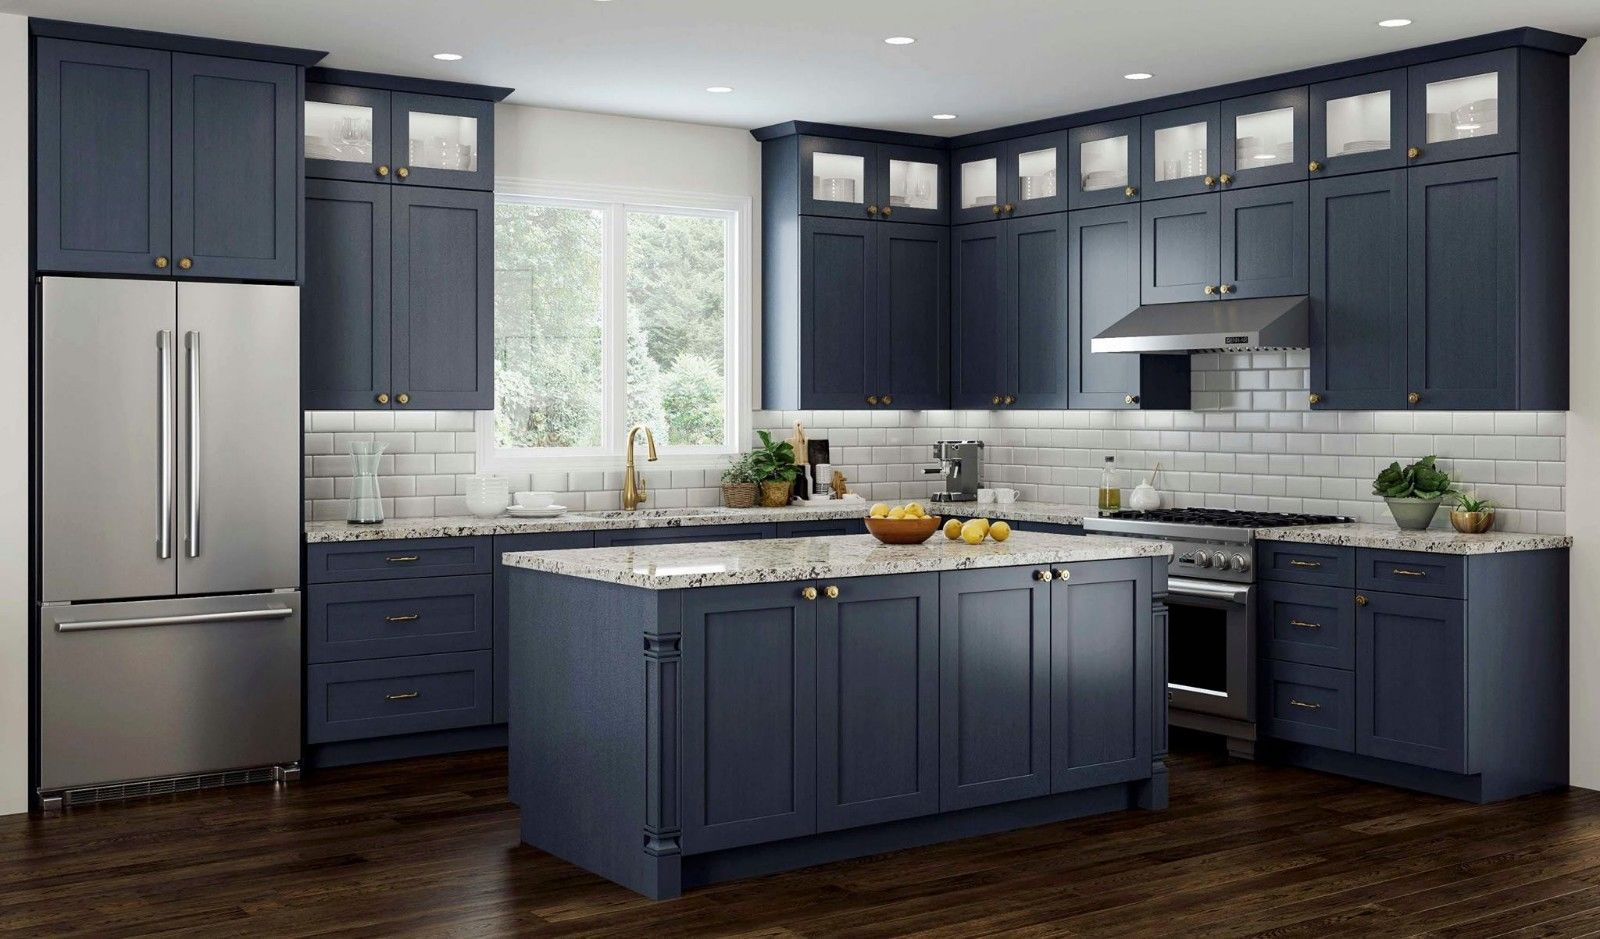 All Wood RTA 10X10 Transitional Shaker Kitchen in